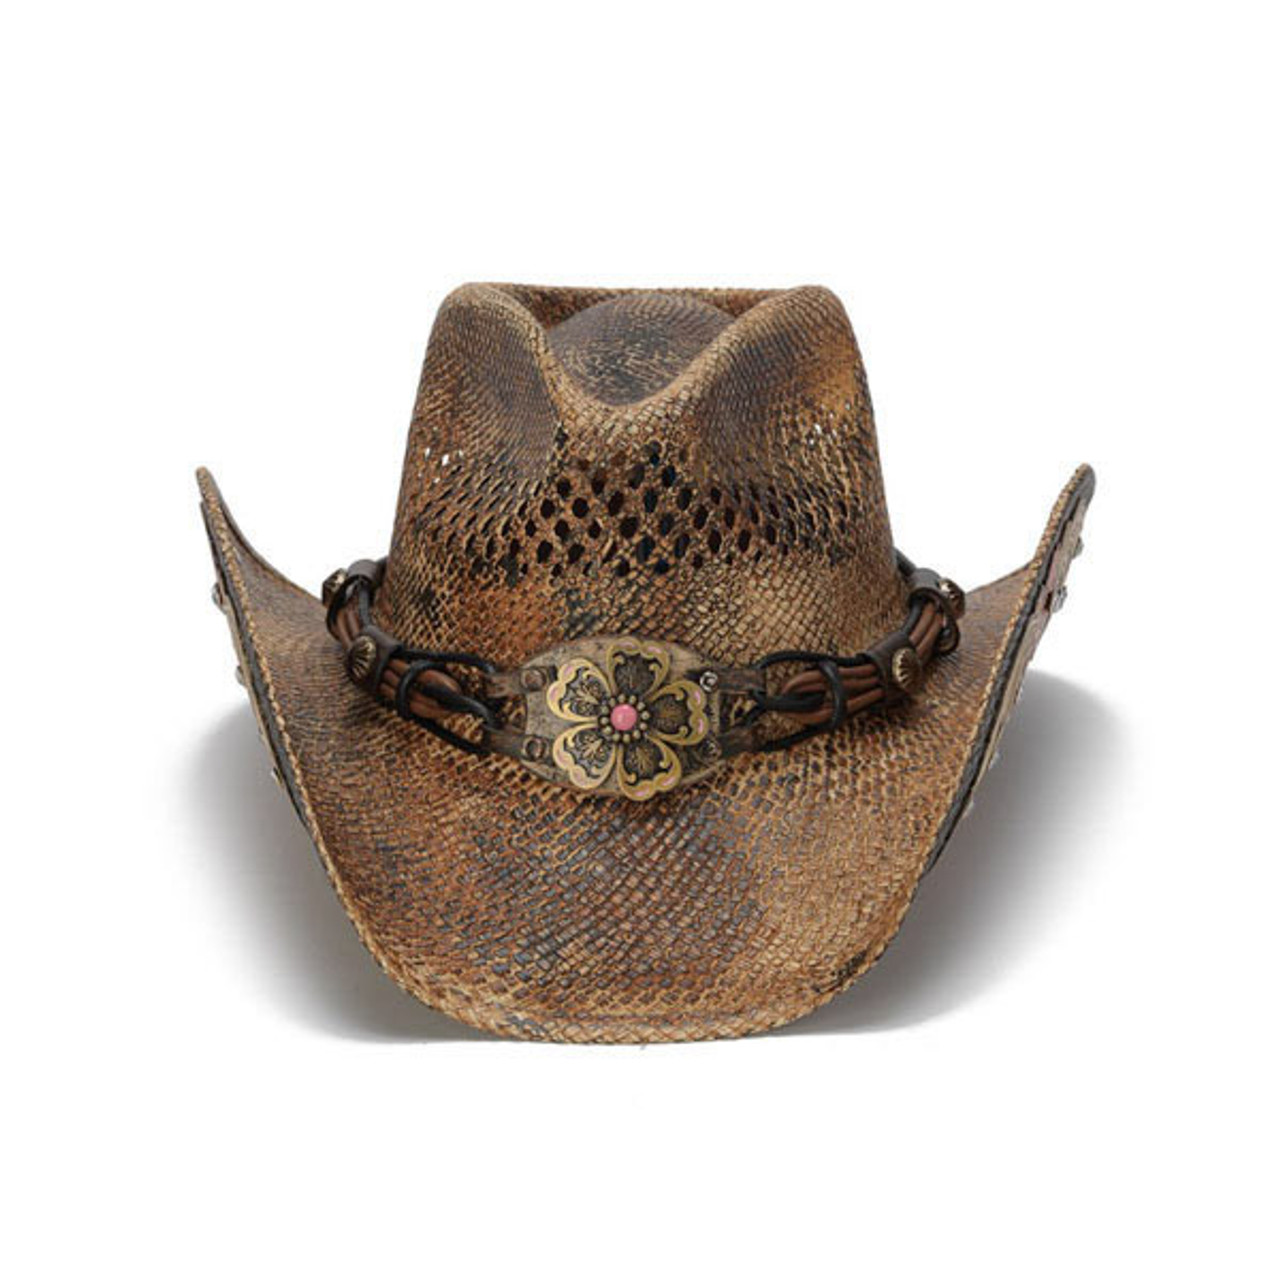 5b64e8059 Stampede Hats - Flowers and Rhinestone Cowboy Hat